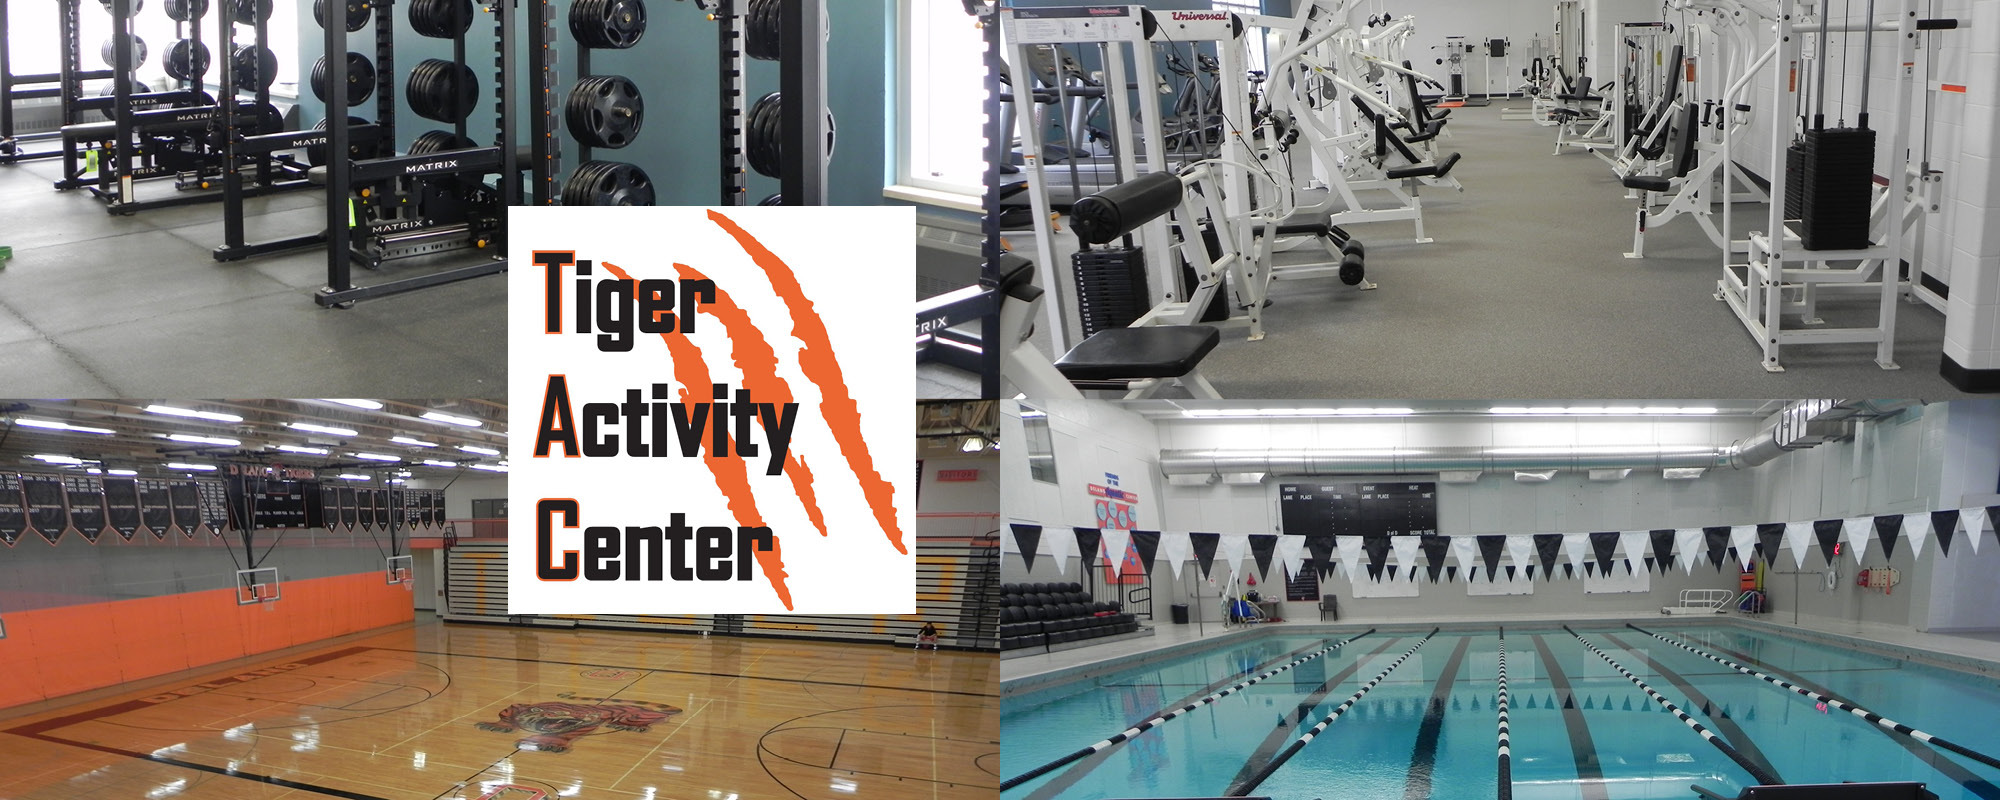 Check out the Tiger Activity Center!